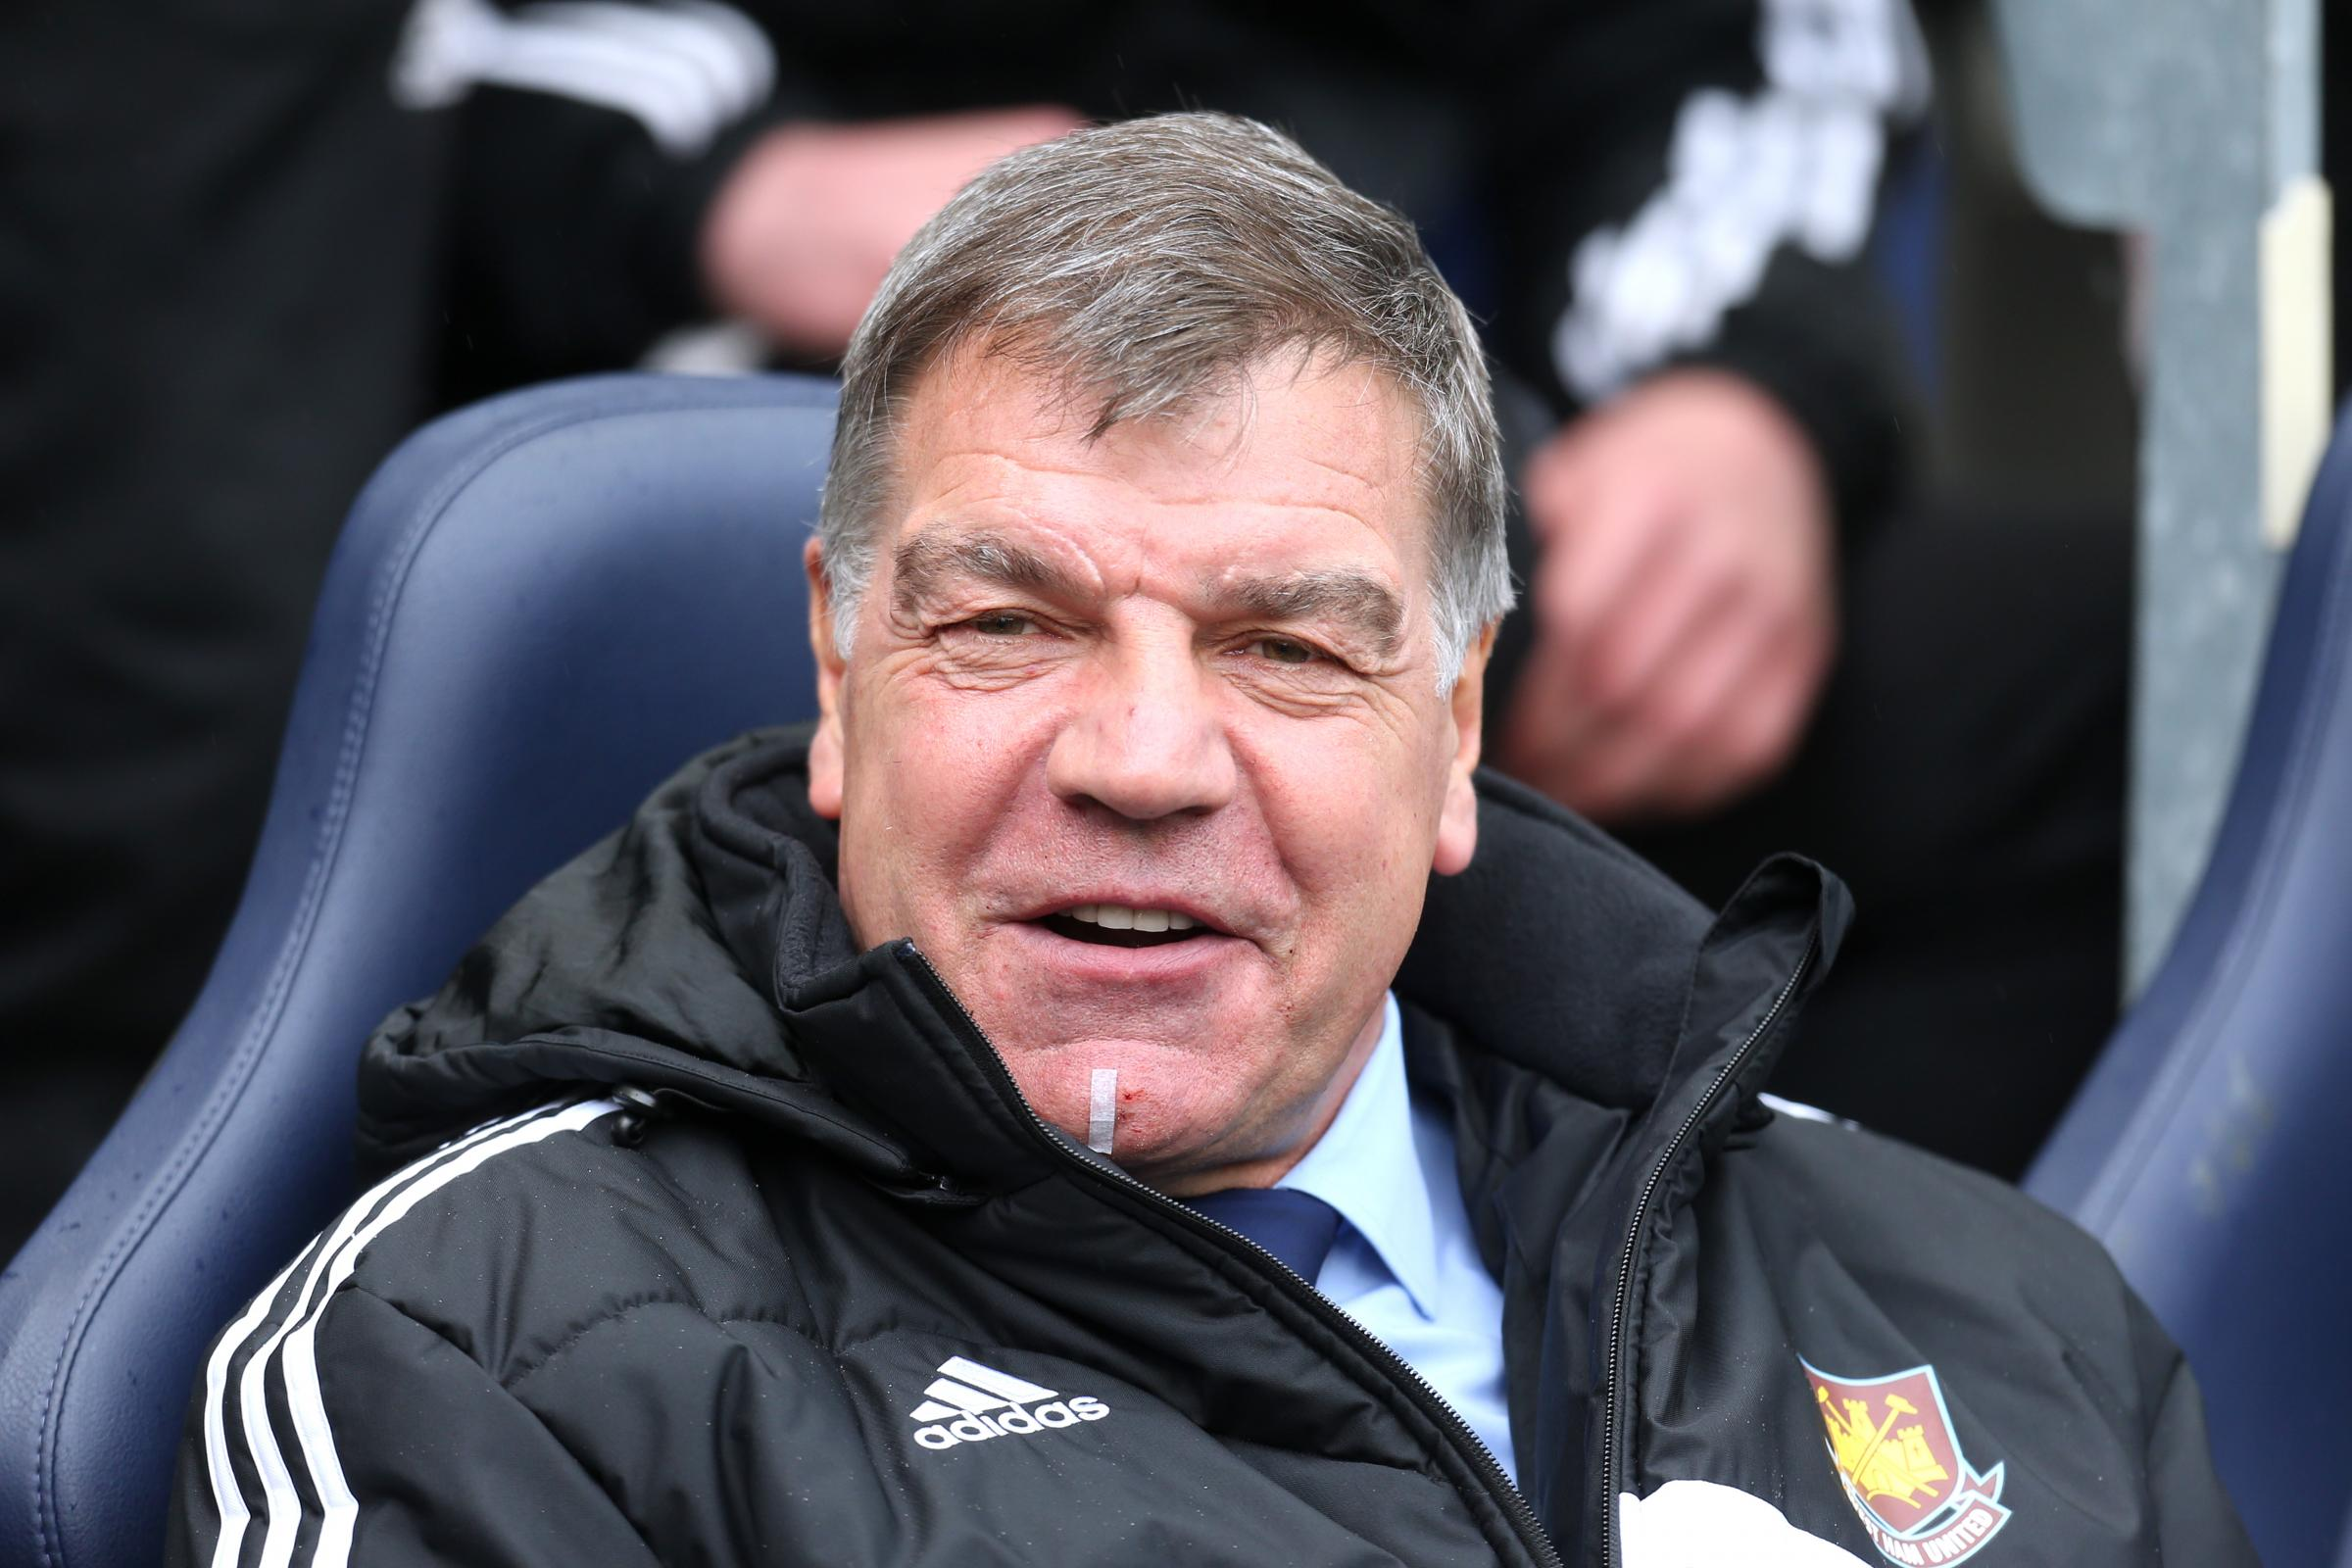 Sam Allardyce remains in the hot-seat at Upton Park for now. Picture: Action Images